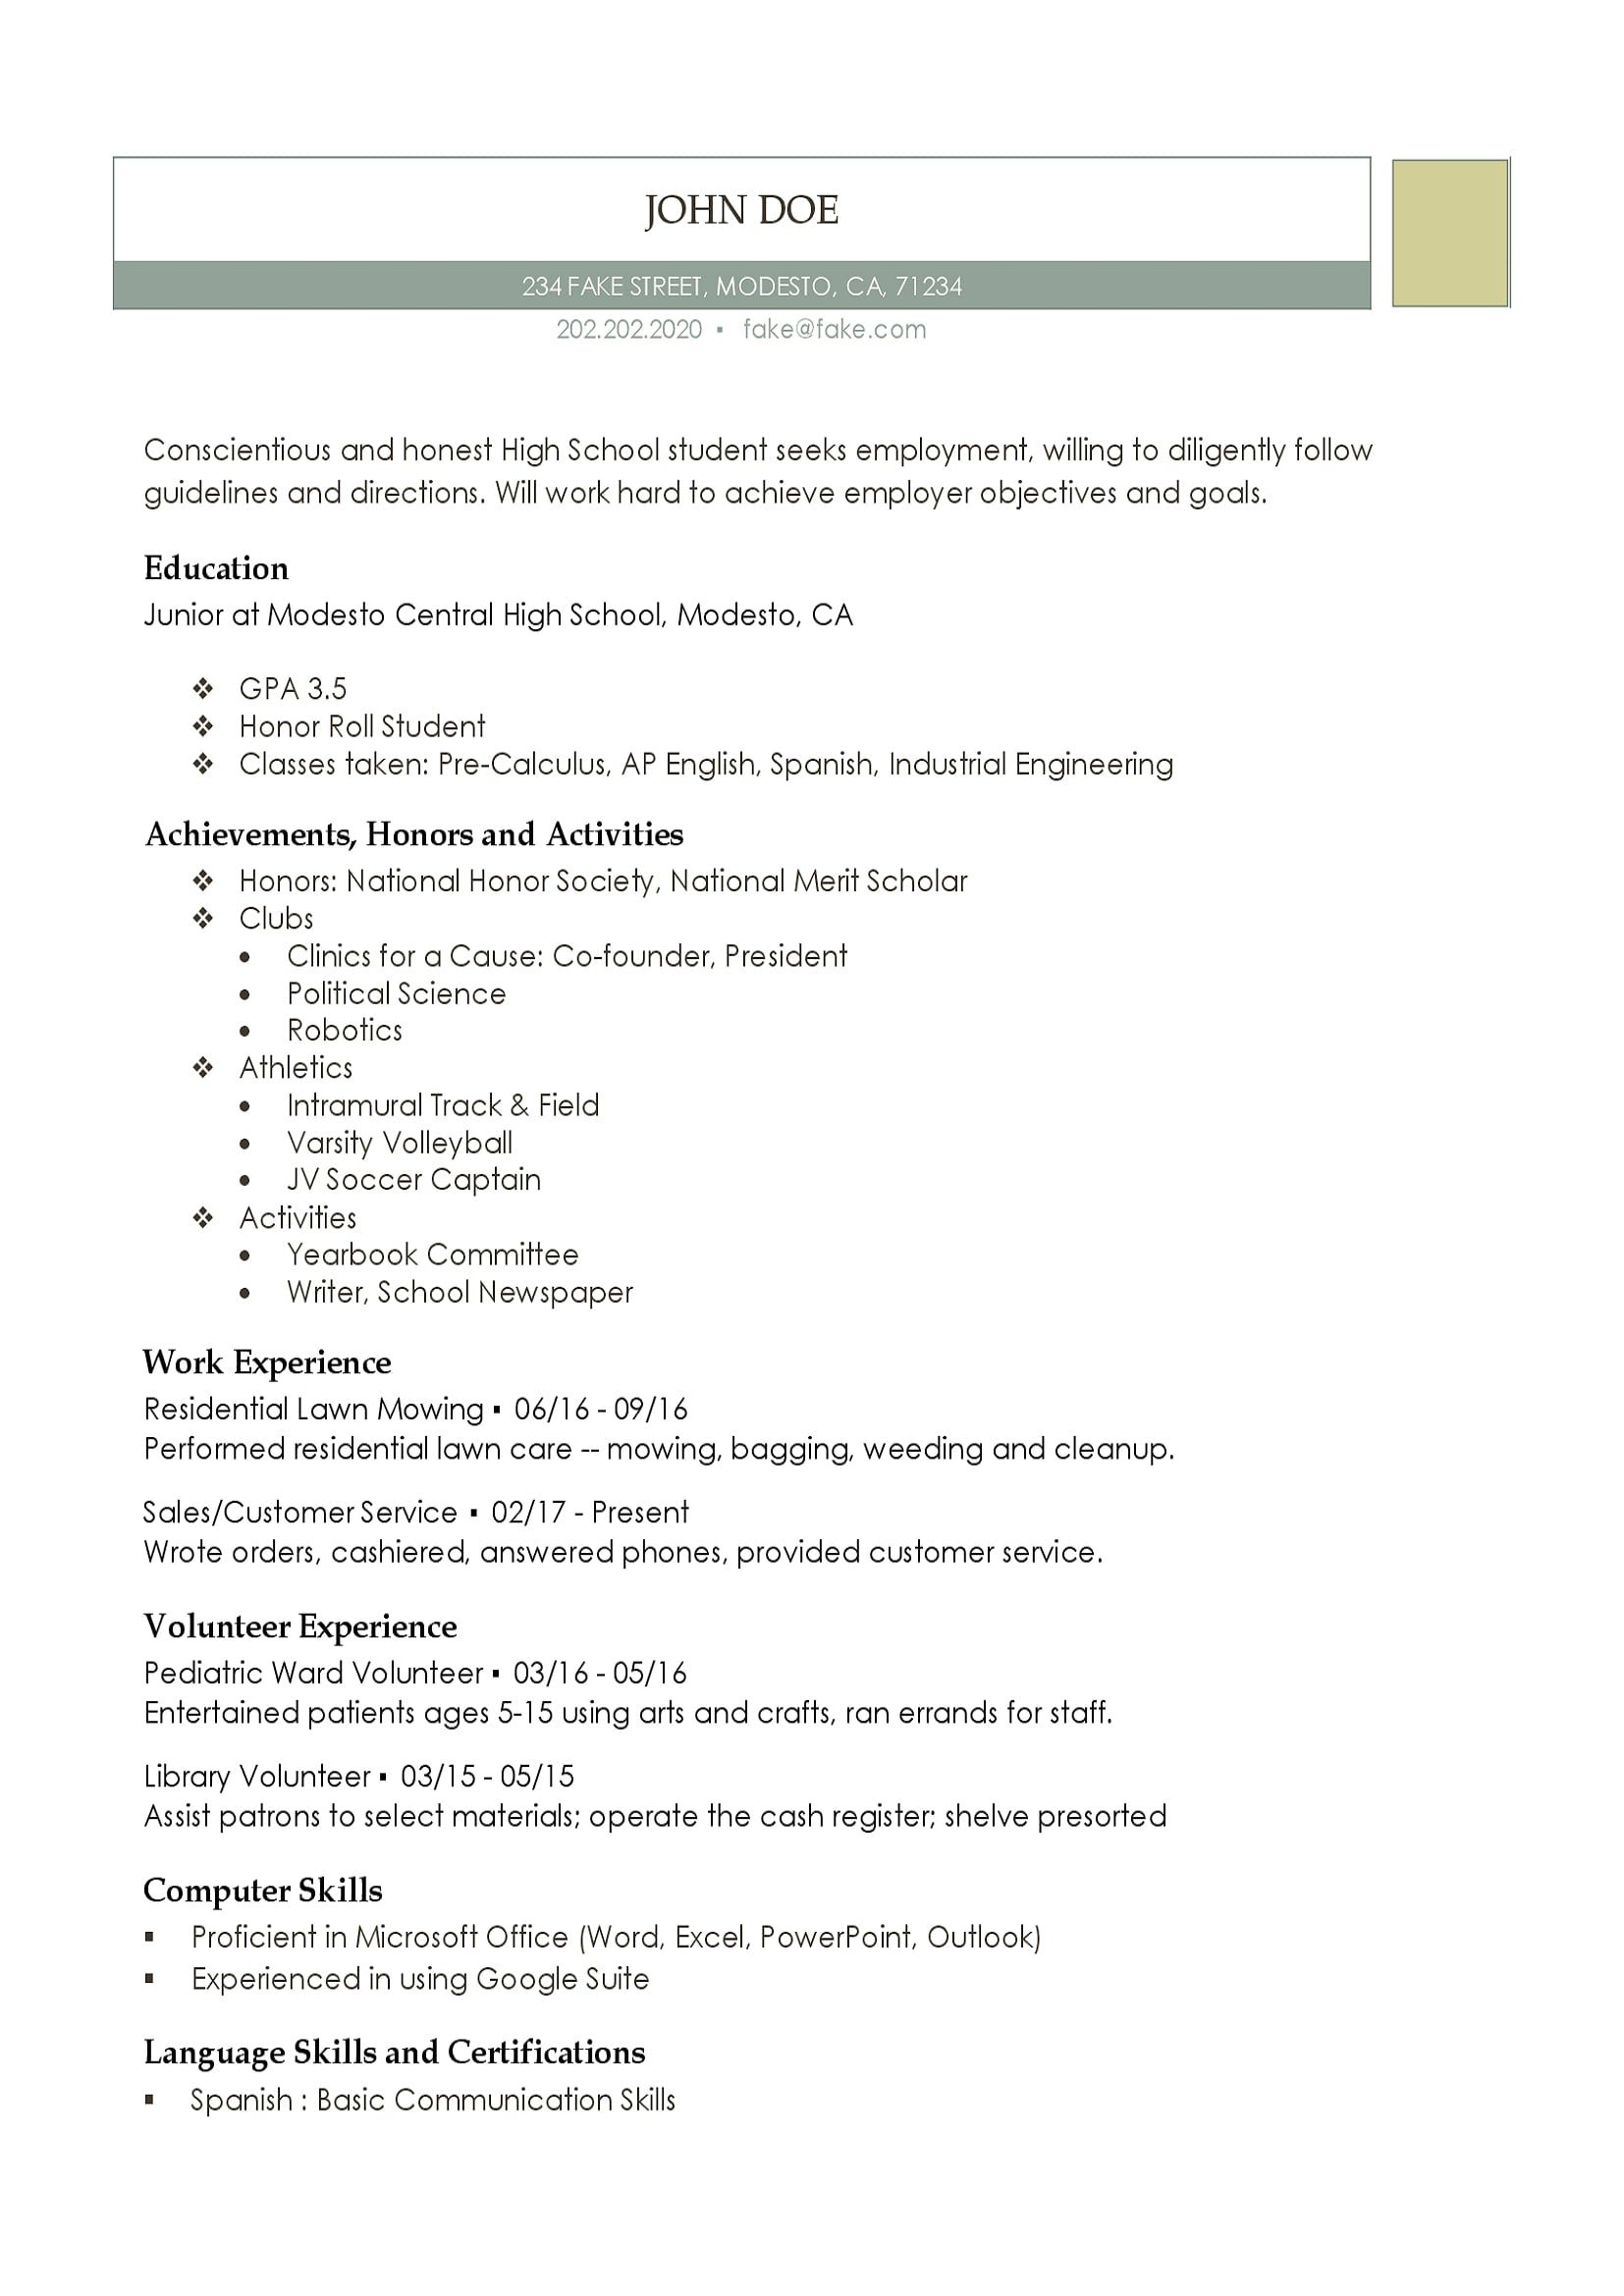 002 Incredible Student Resume Template Word Image  High School Free College Microsoft DownloadFull